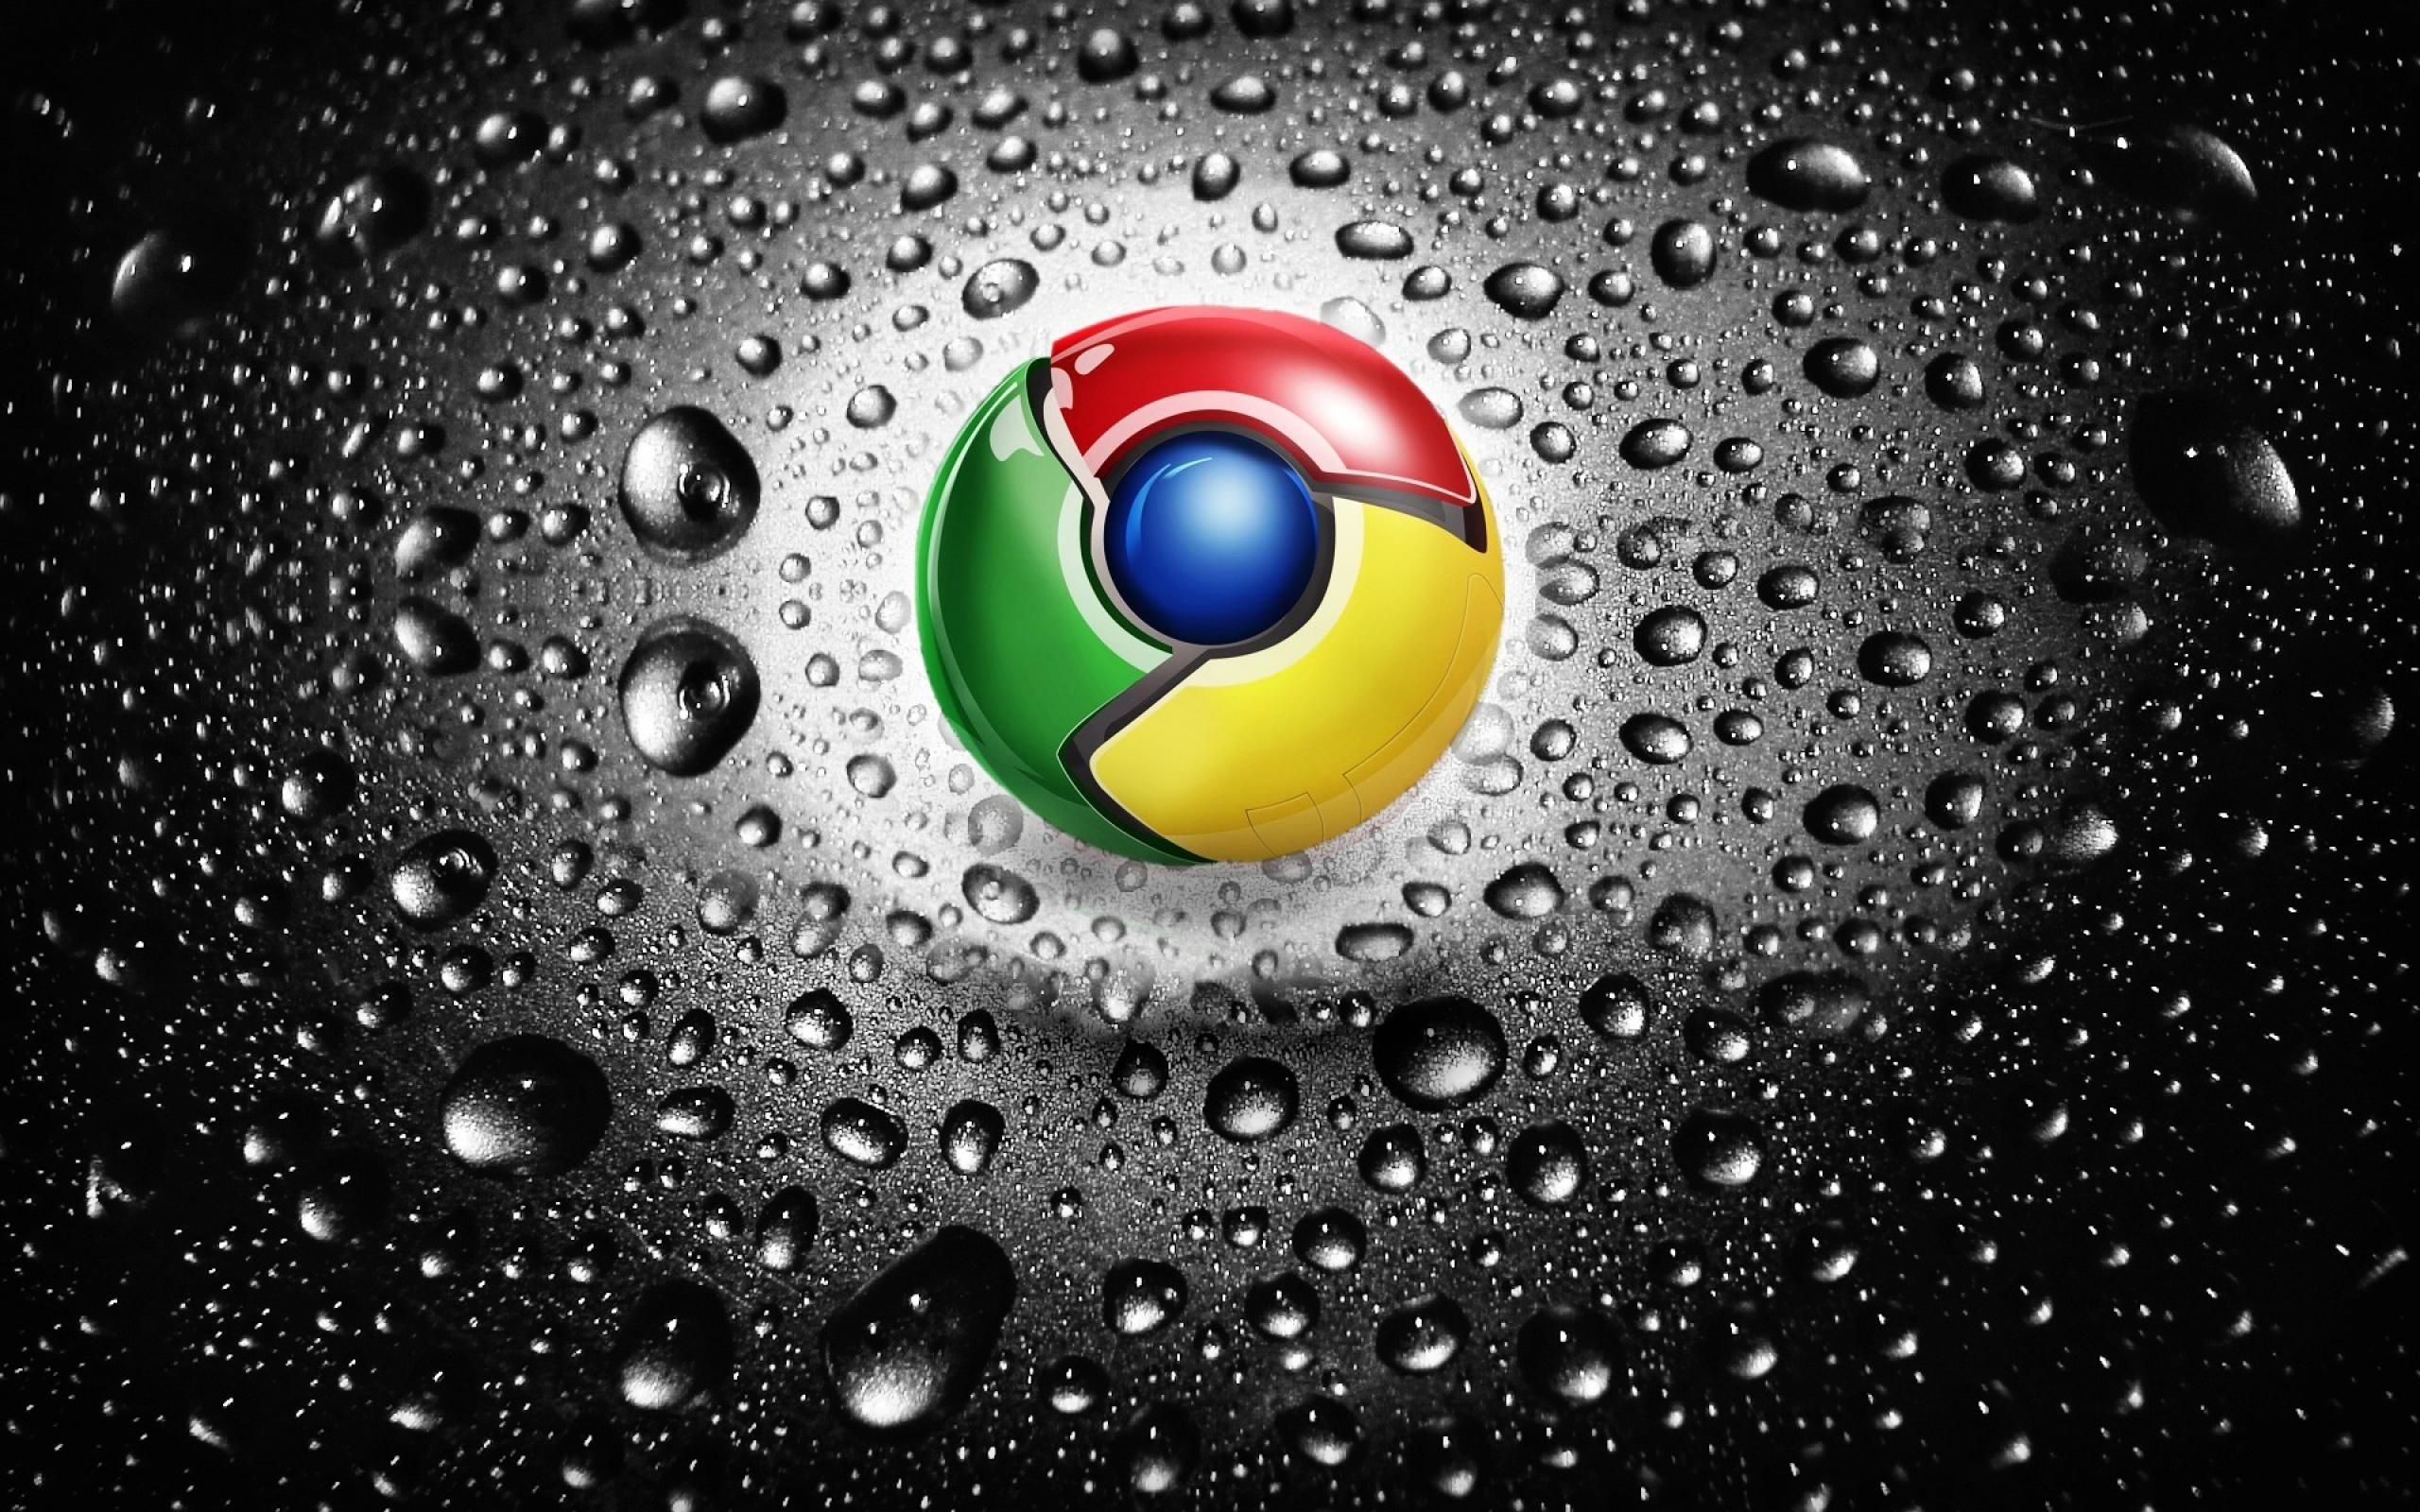 Google Wallpaper And Background Google Wallpaper Hd Chrome Google Chrome Wallpaper